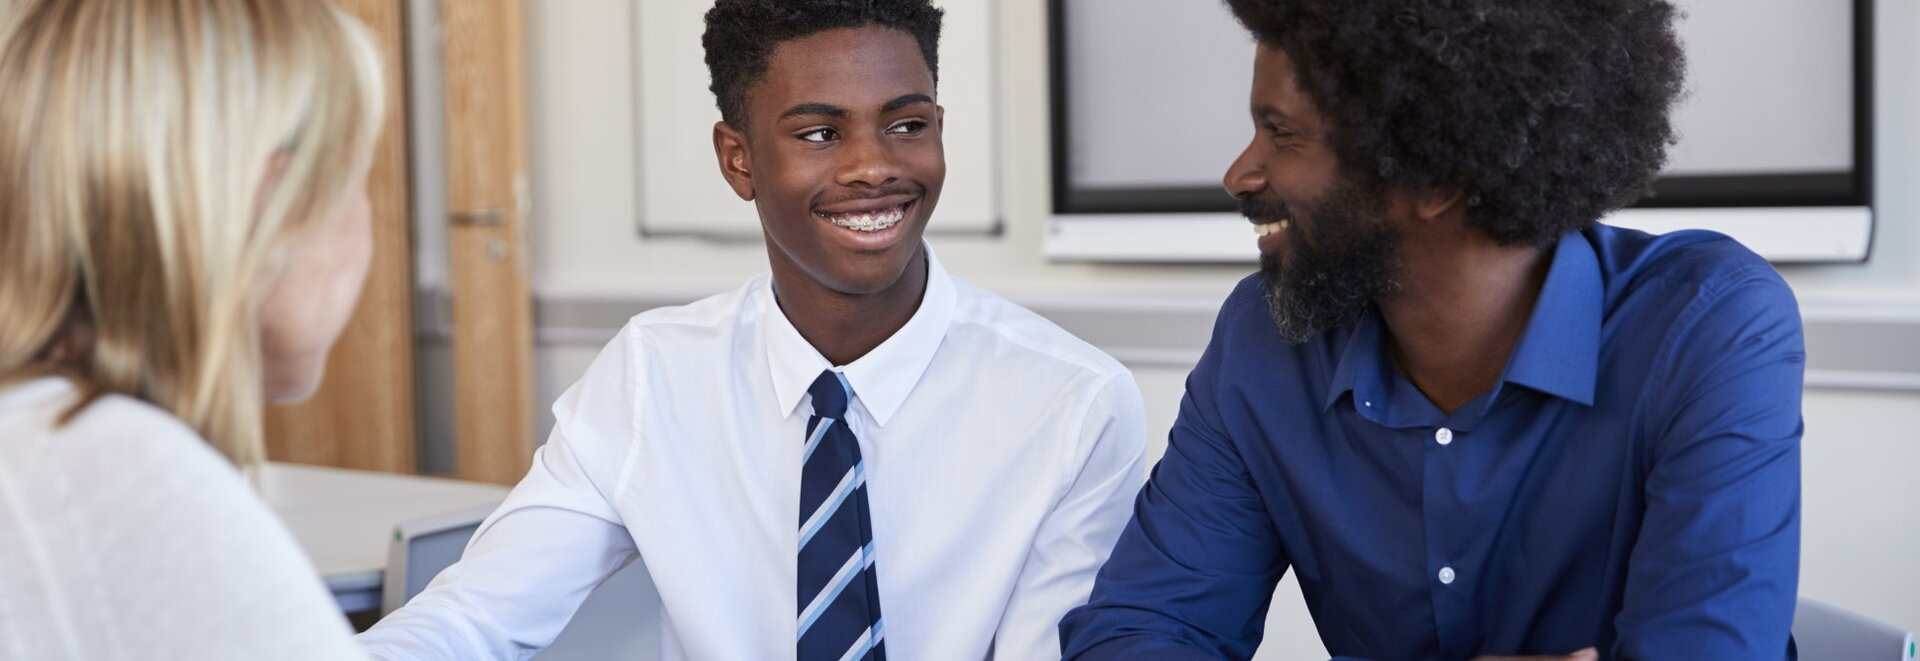 How to Start Implementing Student-Led Conferences